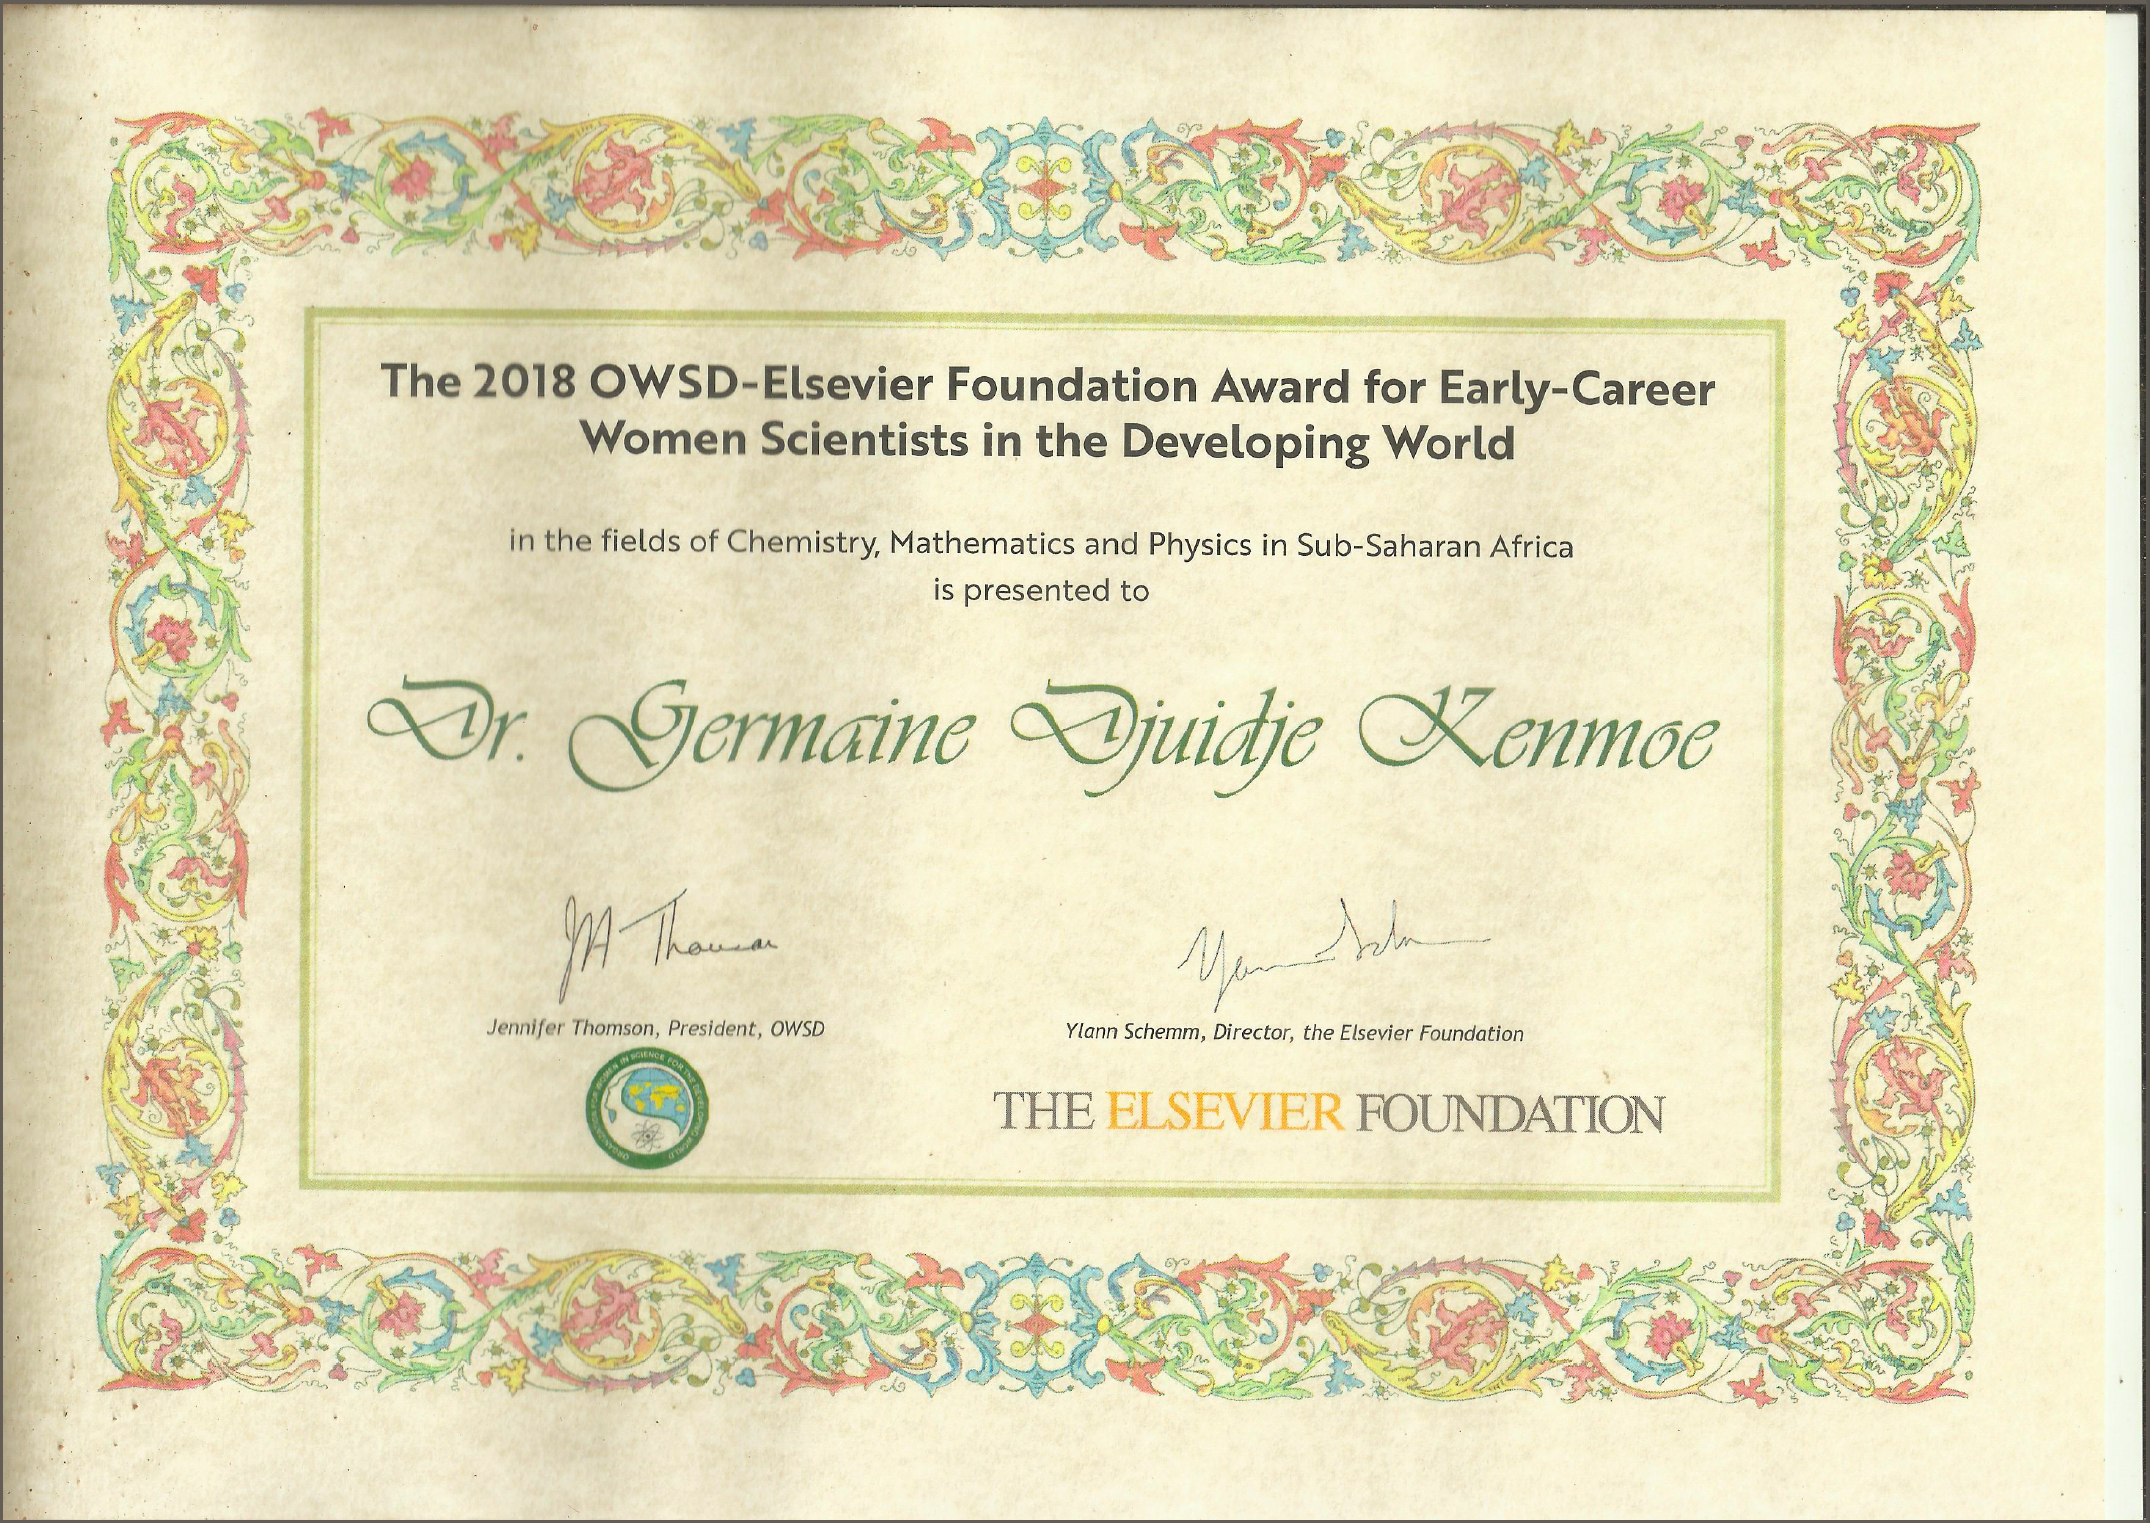 2018 OWSD-Elsevier Foundation Awards for Women in Science, DJUIDJE KENMOE GERMAINE,  Ph.D.